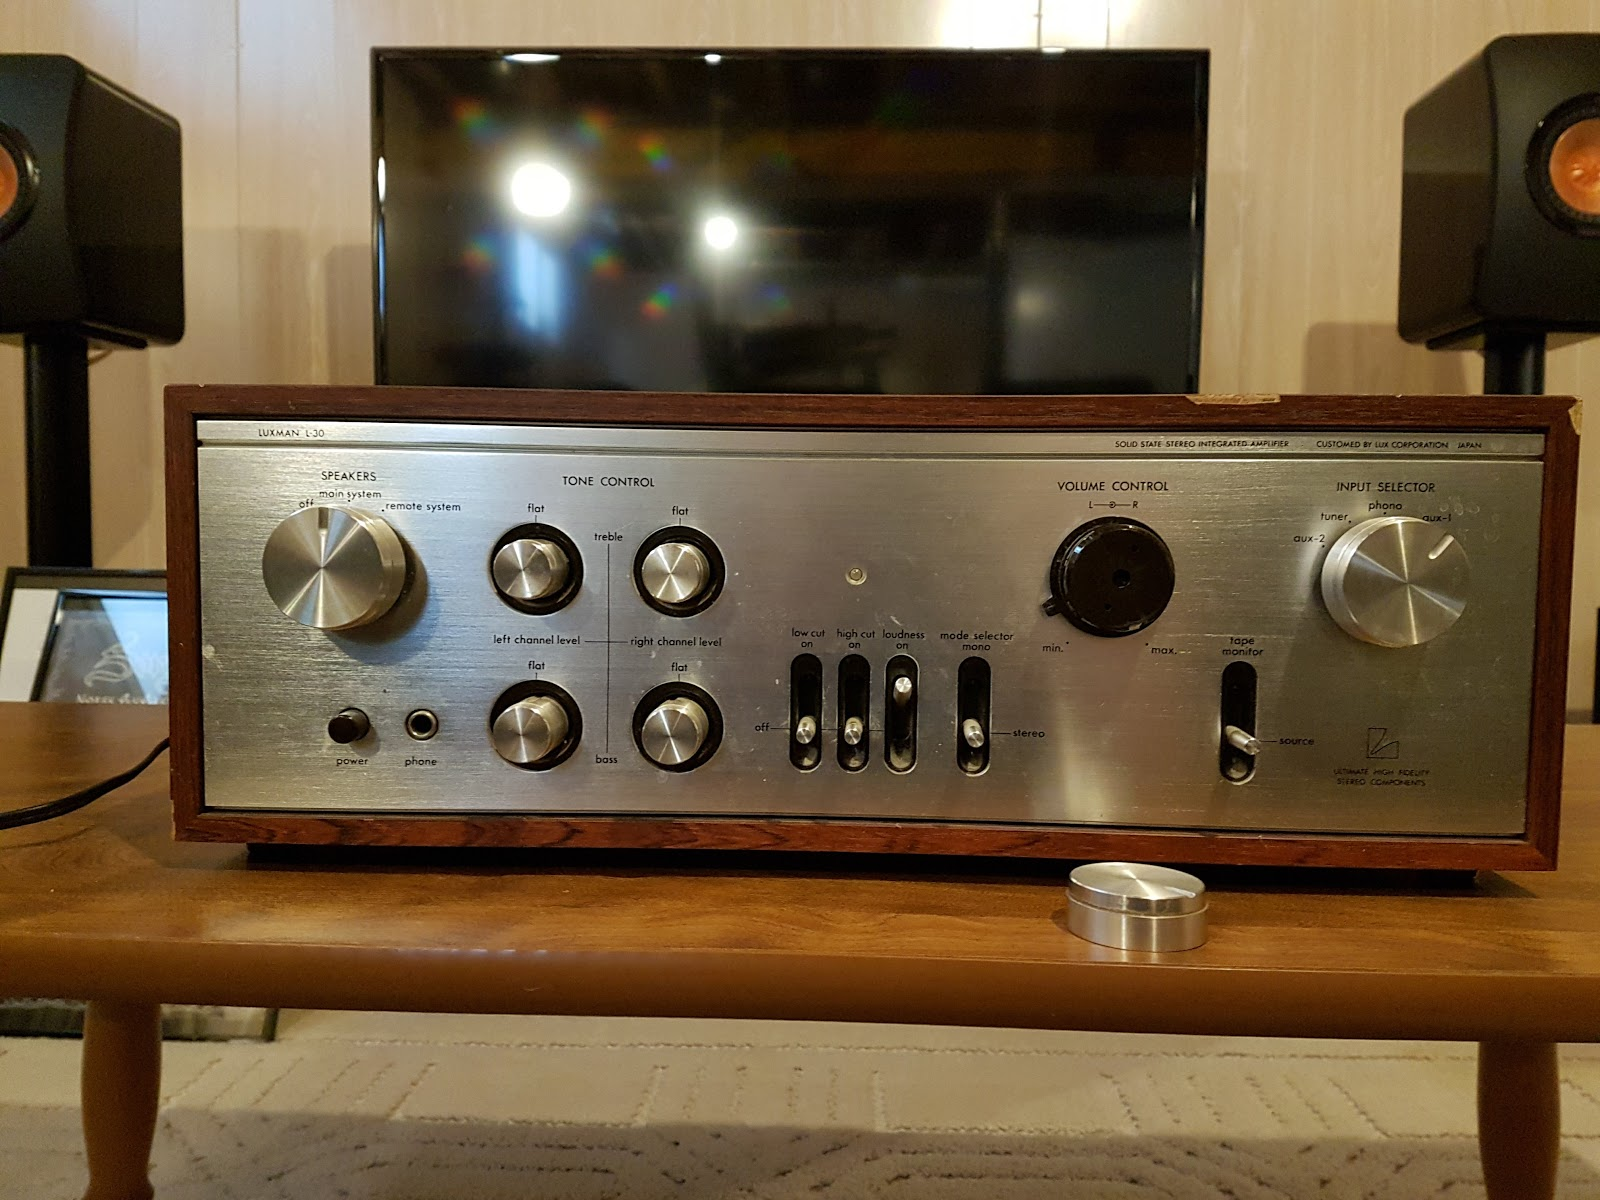 Brahm Rebuilding A 1977 Luxman L 30 Stereo Amplifier Audio Basics Modern System Has Two I Took The Amp Apart For First Time And Cleaned Potentiometers With Deoxit Miracle Contact Cleaner After Turning Each Knob Back Forth About